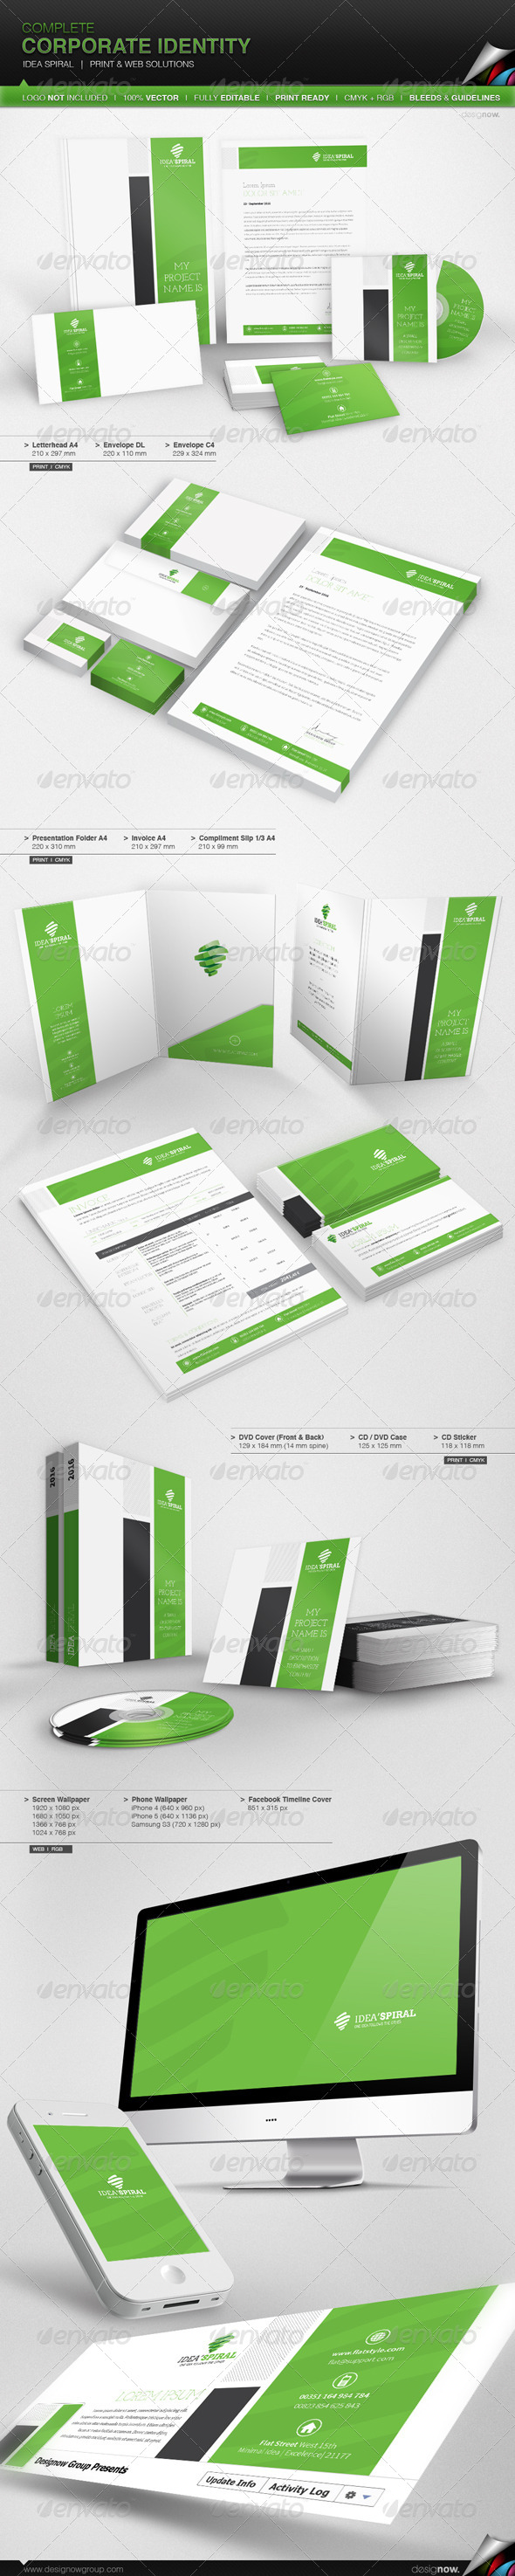 Corporate Identity - Idea Spiral - Stationery Print Templates